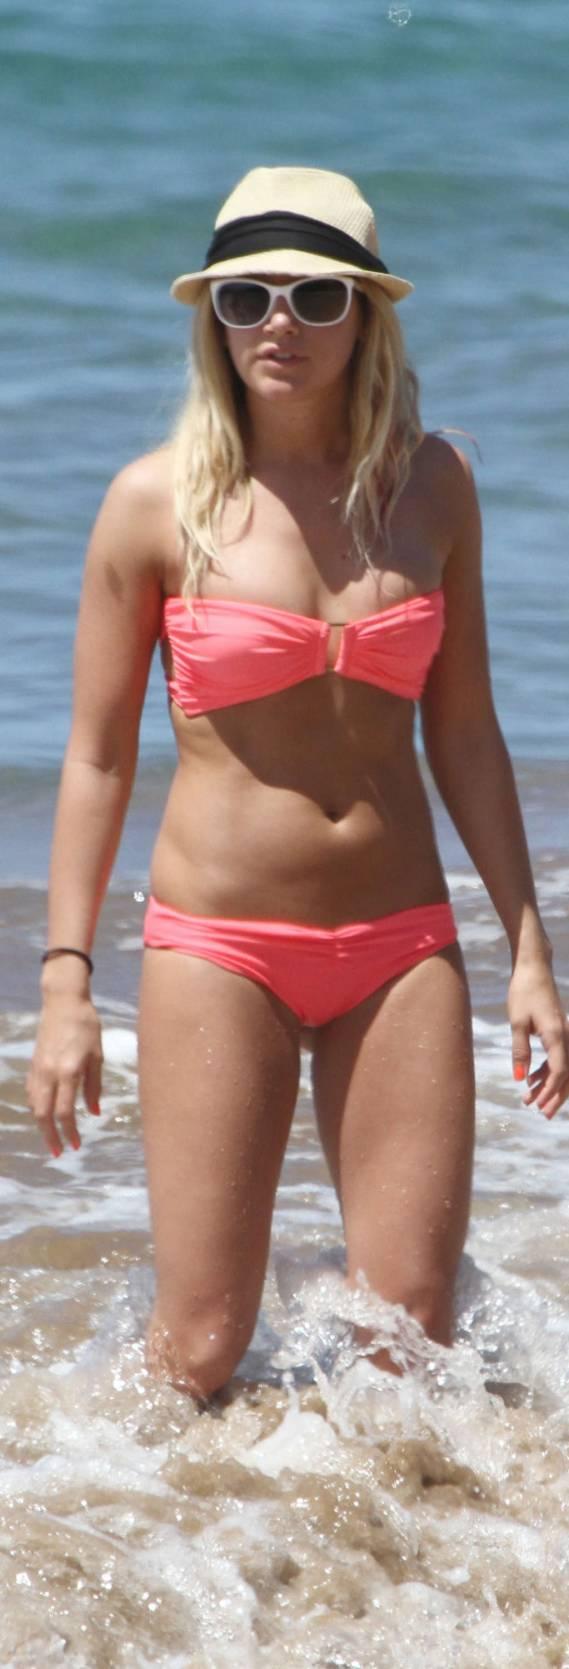 Ashley was spotted having a gala time vacationing in the beaches of Hawaii in March 2012.